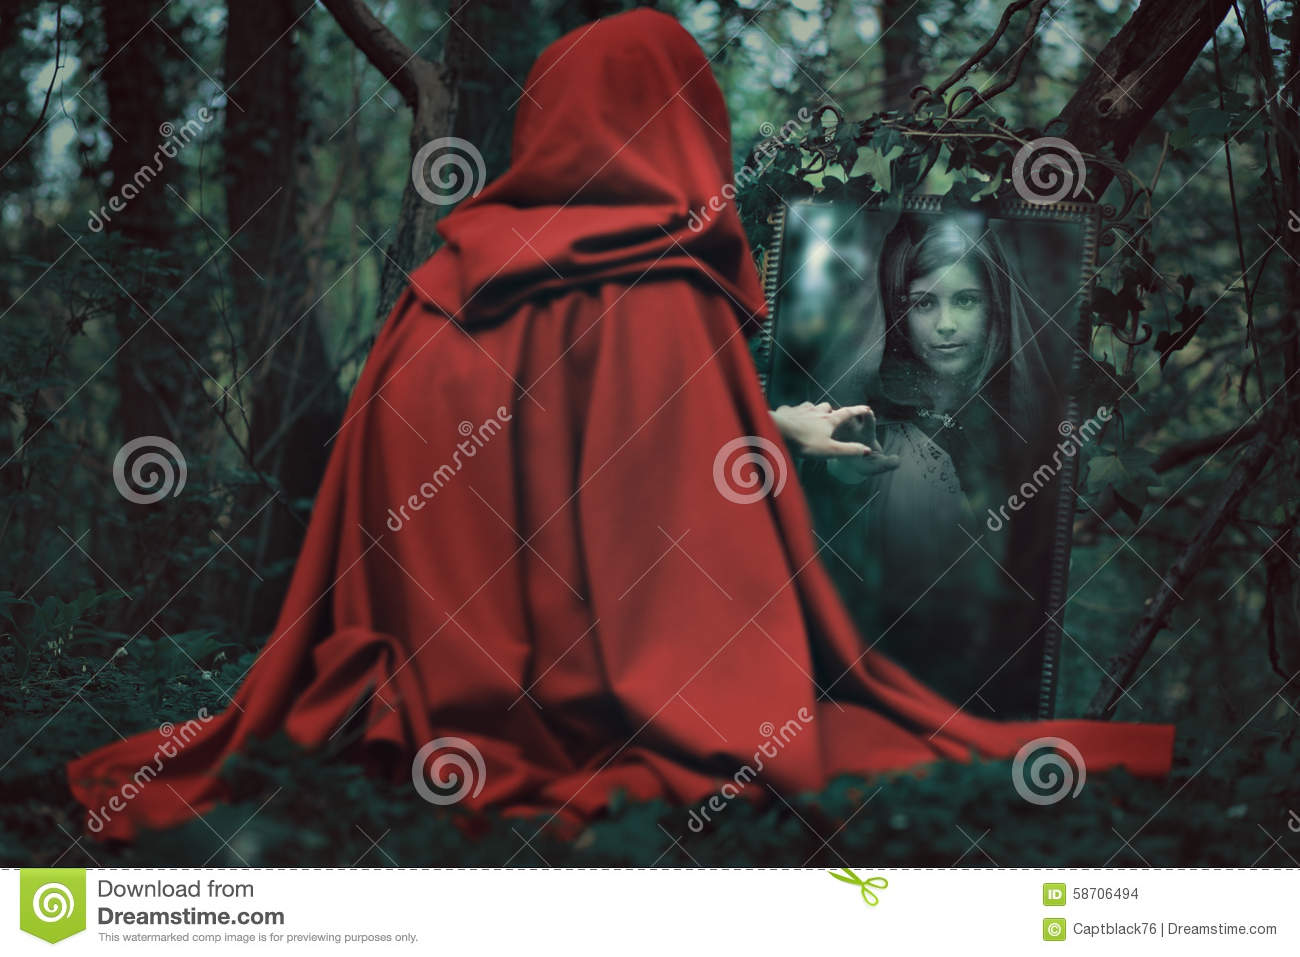 Mysterious hooded woman in front of a magical mirror